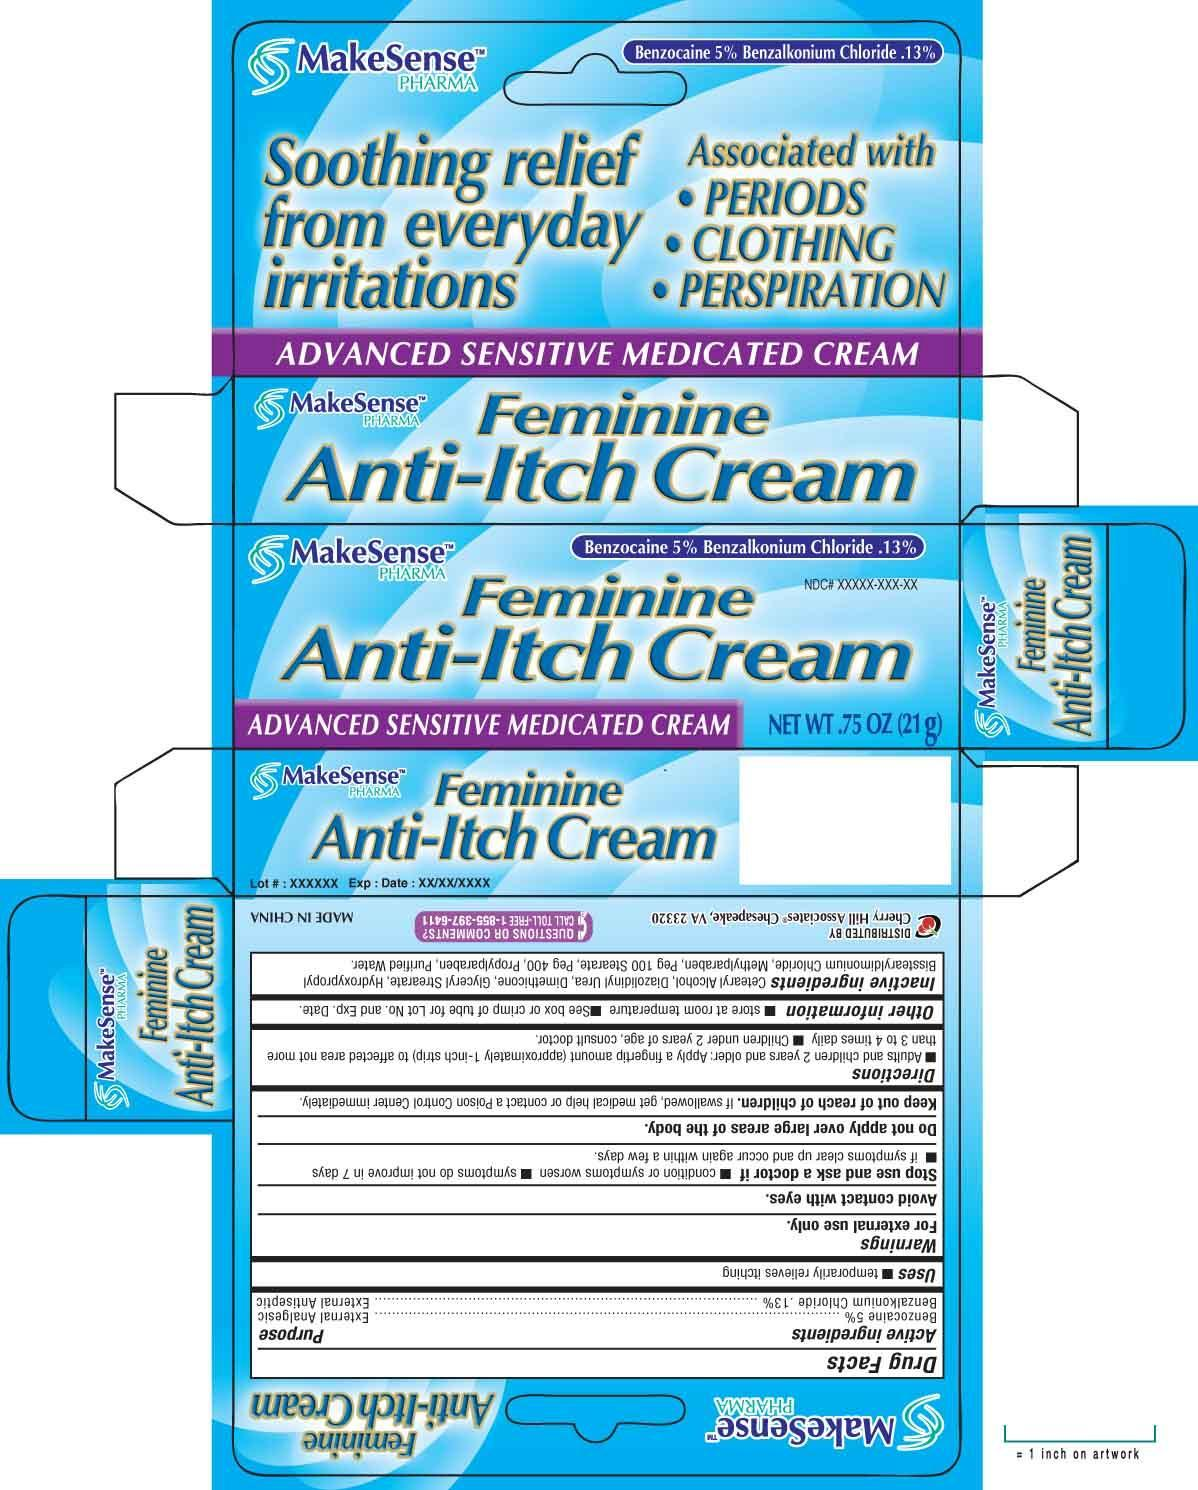 Makesense Feminine Anti-itch (Benzocaine Benzalkonium Chloride) Cream [Cherry Hill Sales Co]